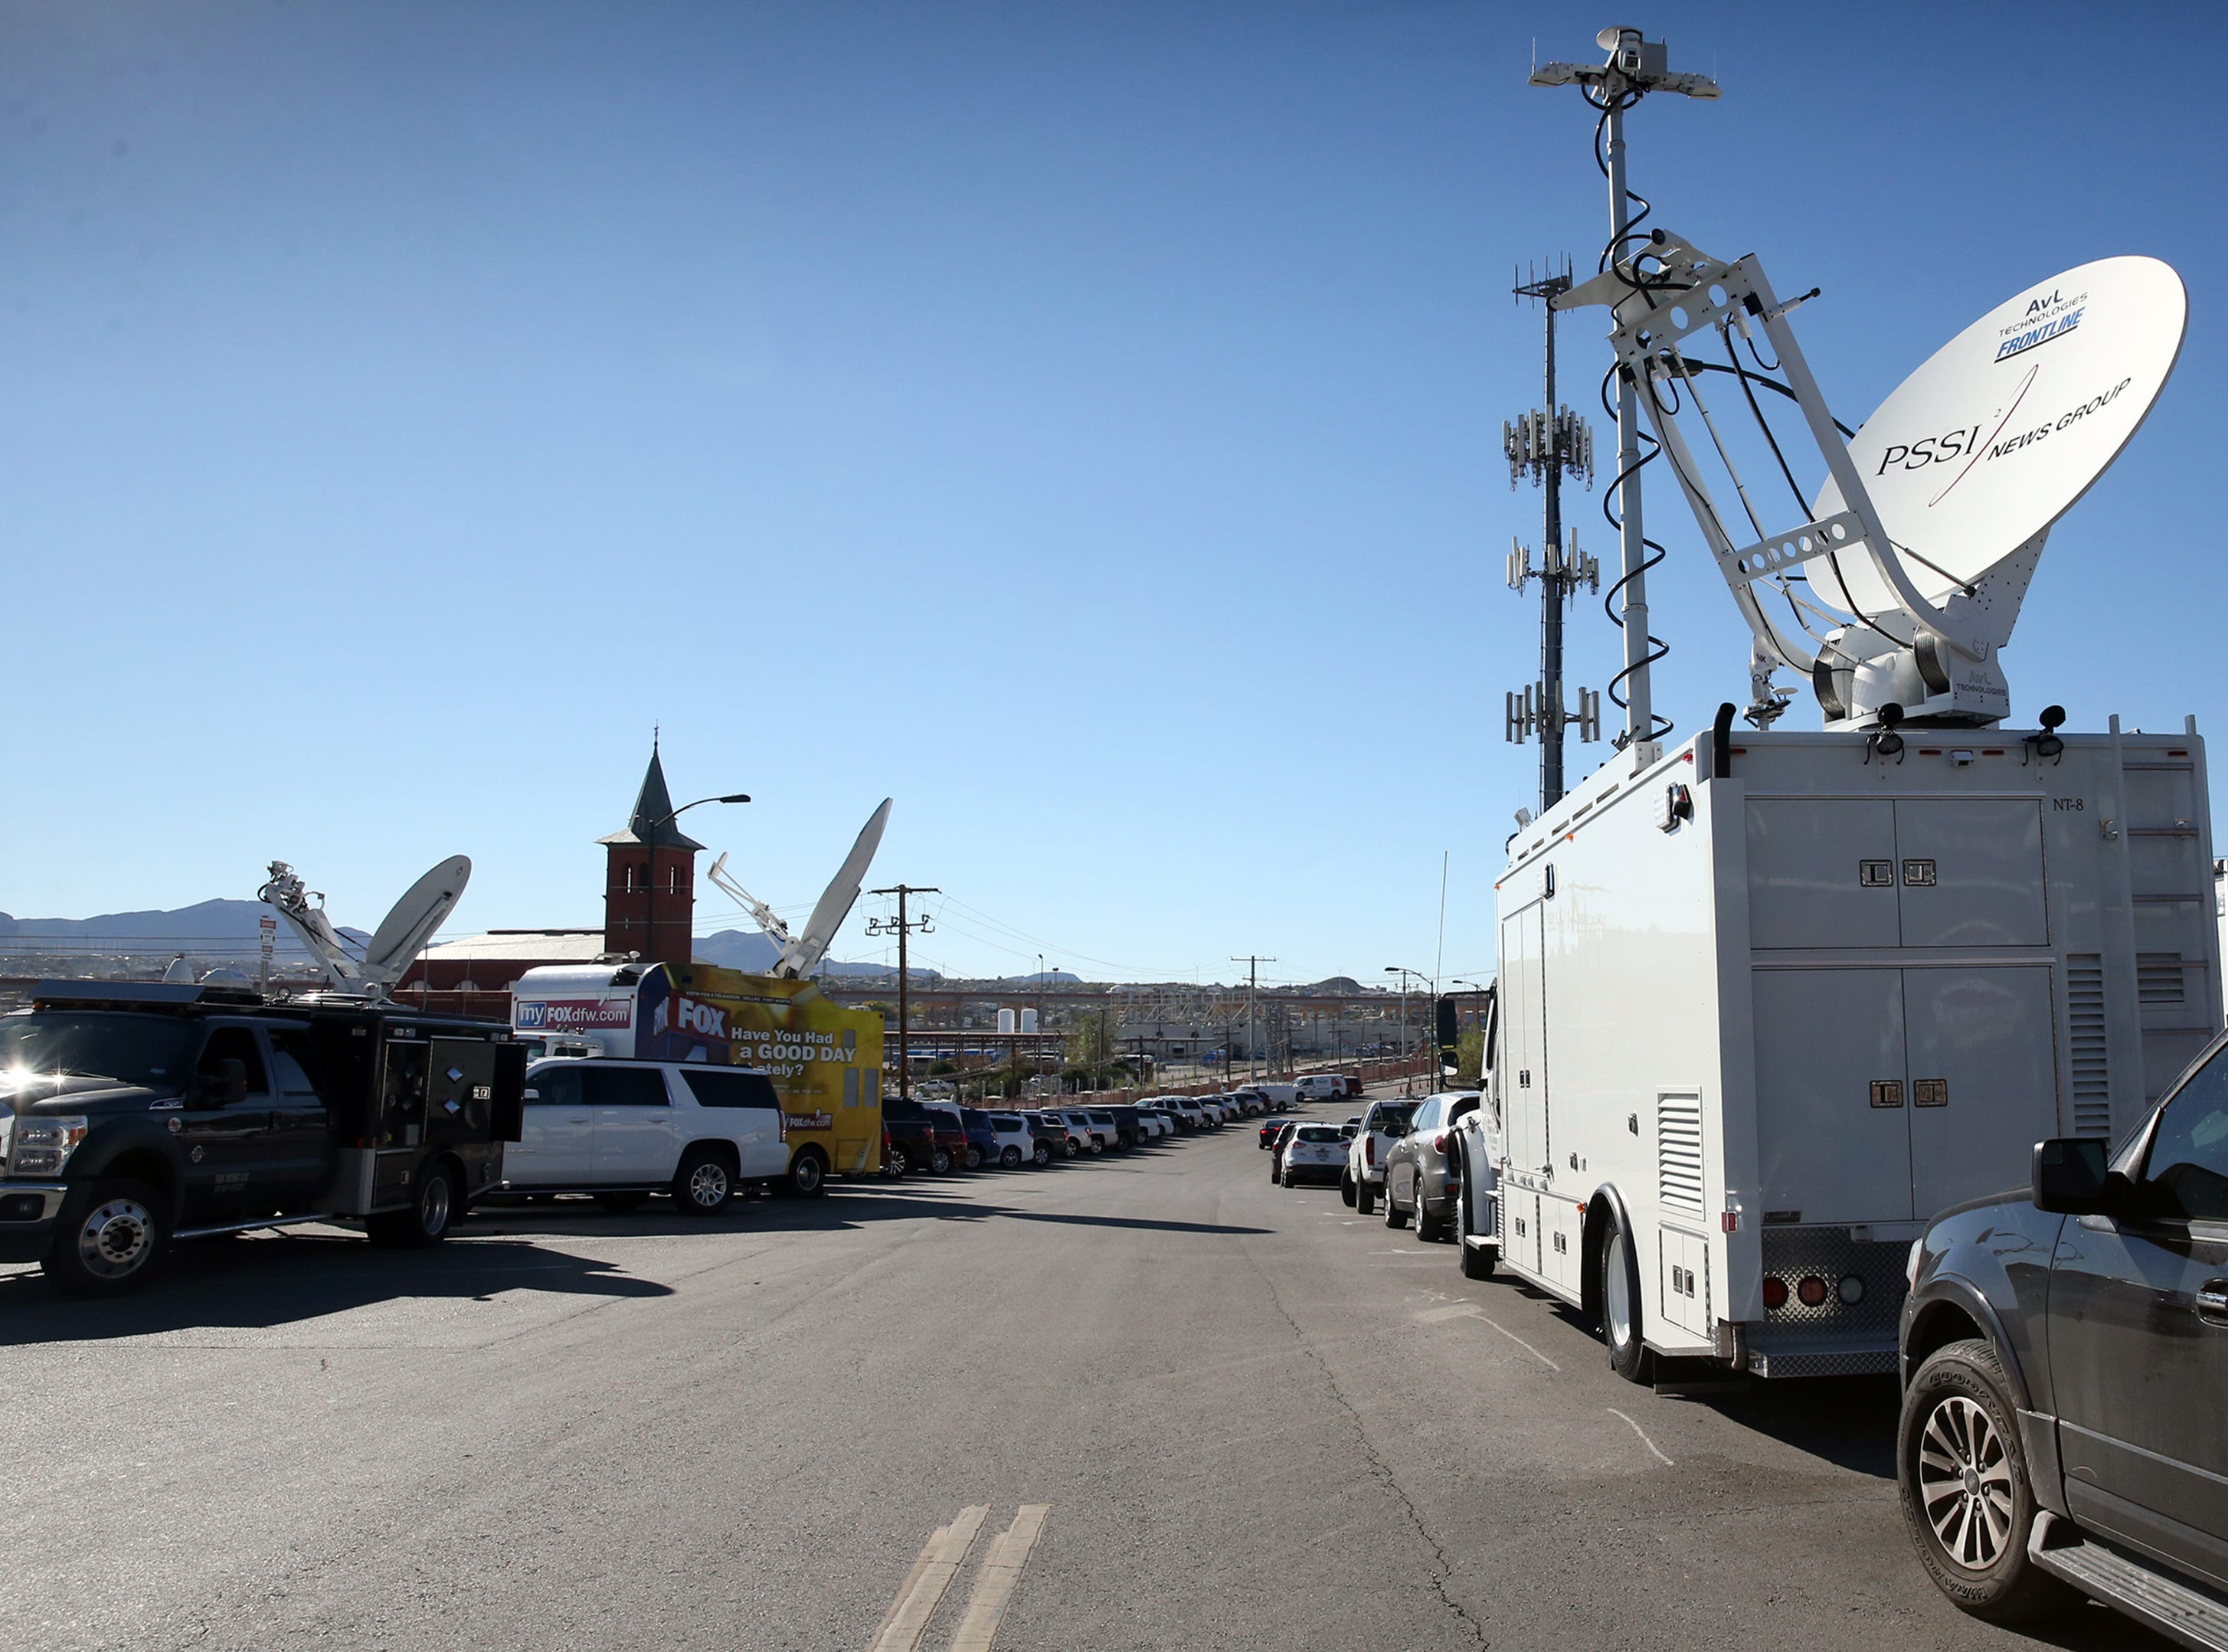 Satellite trucks from various news outlets mostly from Texas line the street outside the West entrance to Southwest University Park Tuesday where Democratic U.S. Senate candidate Beto O'Rourke will hold his election watch party.